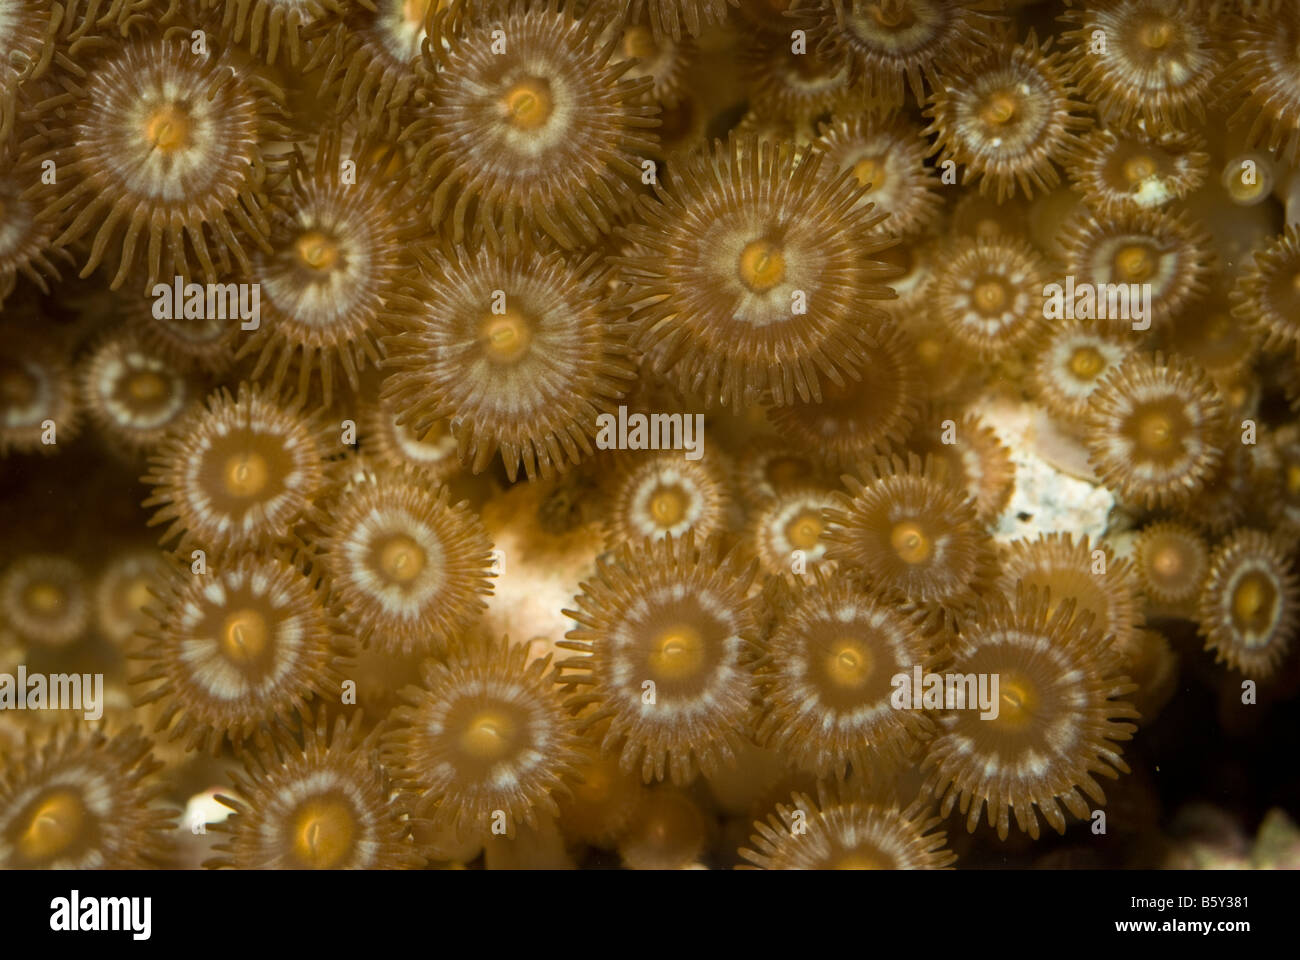 Soft coral Zoanthus sp., reef invertebrates of Indo-pacific ocean - Stock Image